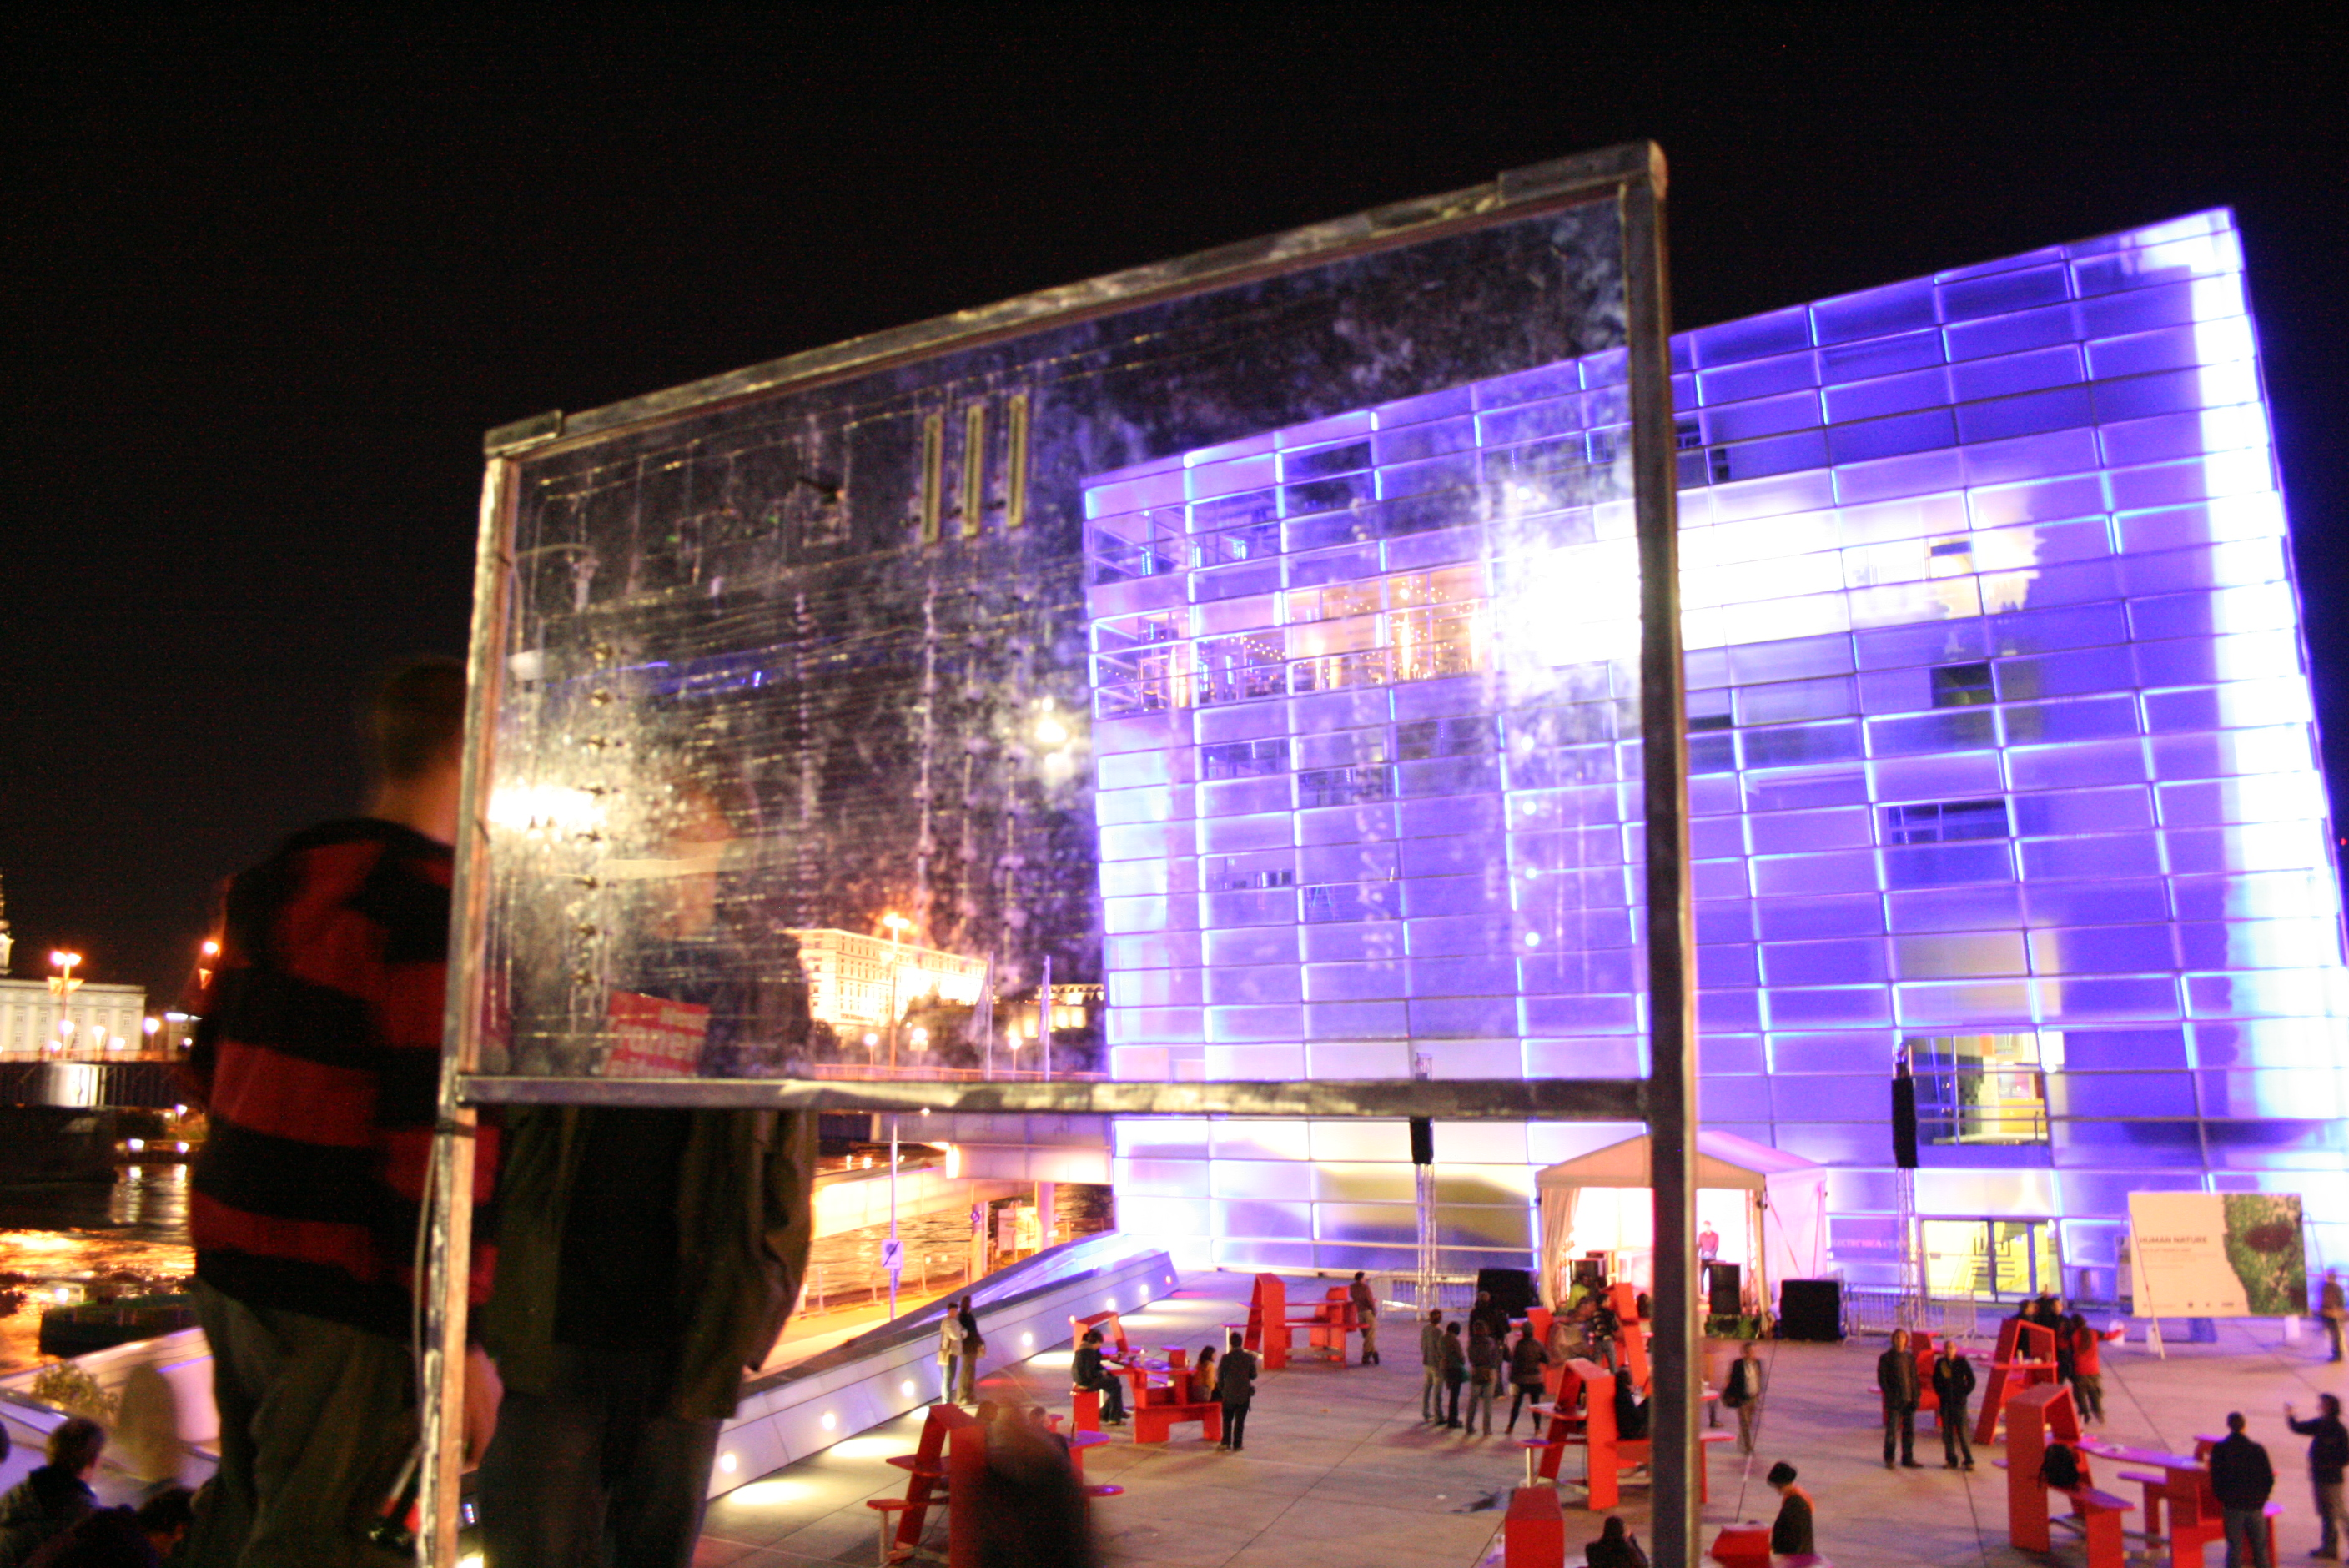 Interface to control the Ars Electronica center's facade.